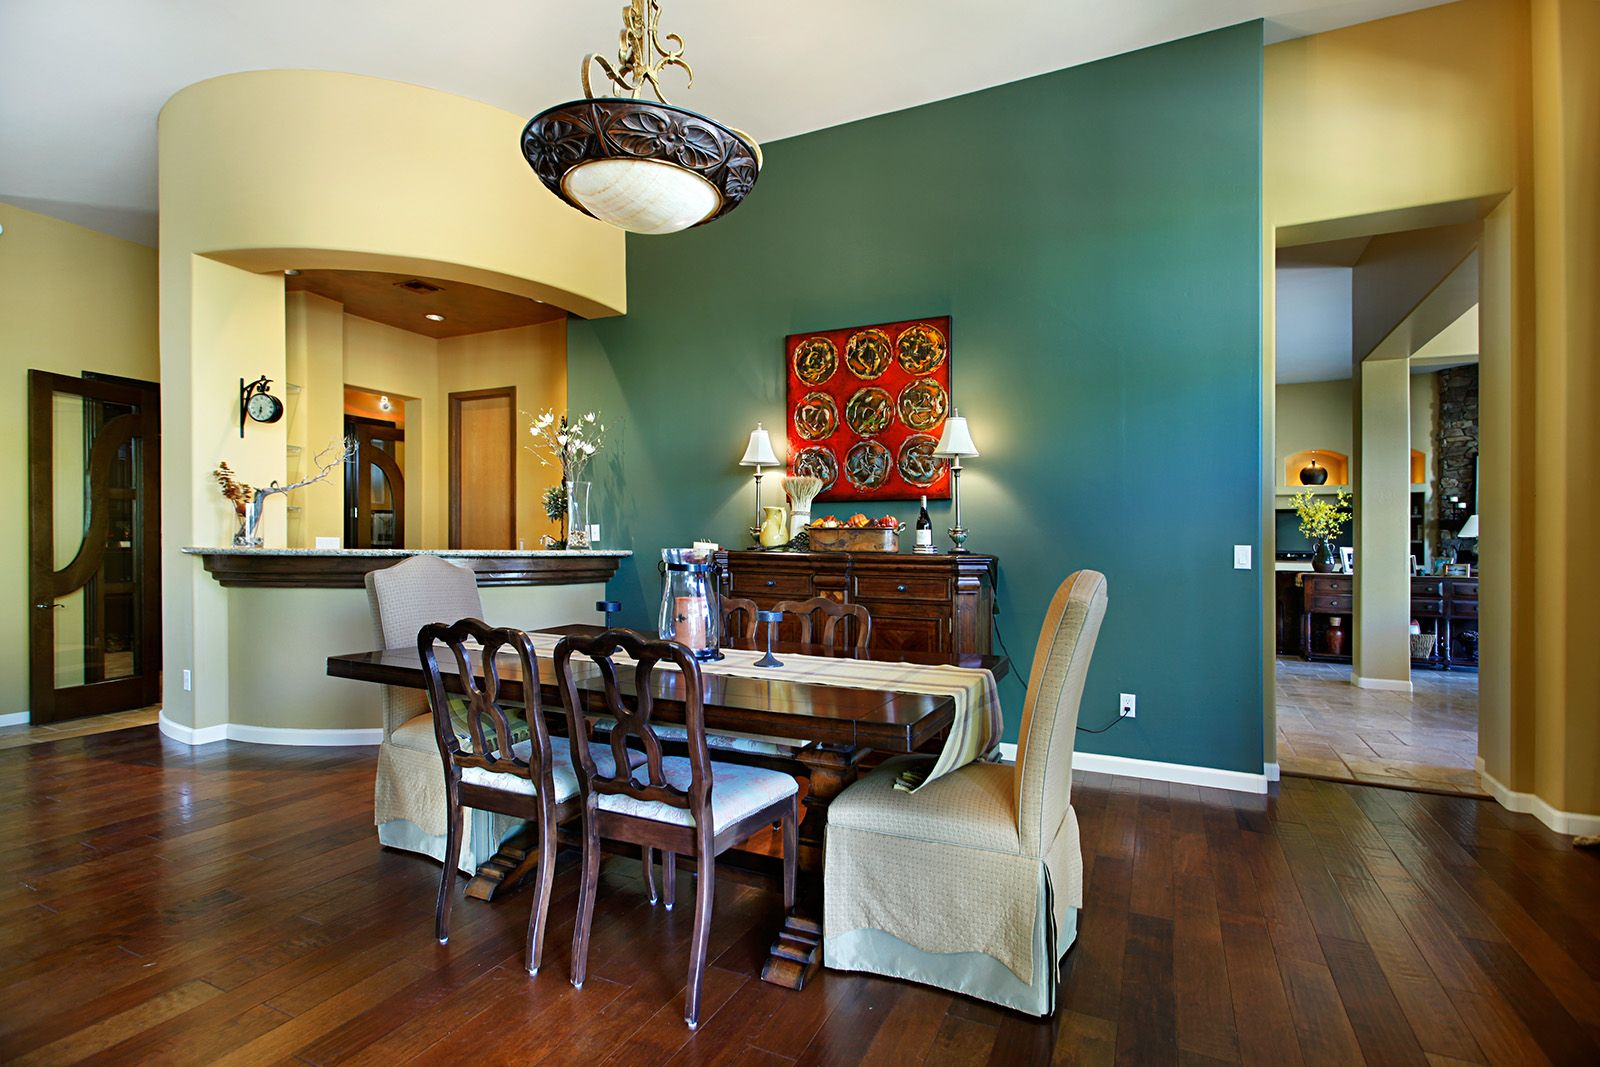 This Turquoise Accent Wall Really Makes Formal Dining Room In DC Ranch Country Club Stand